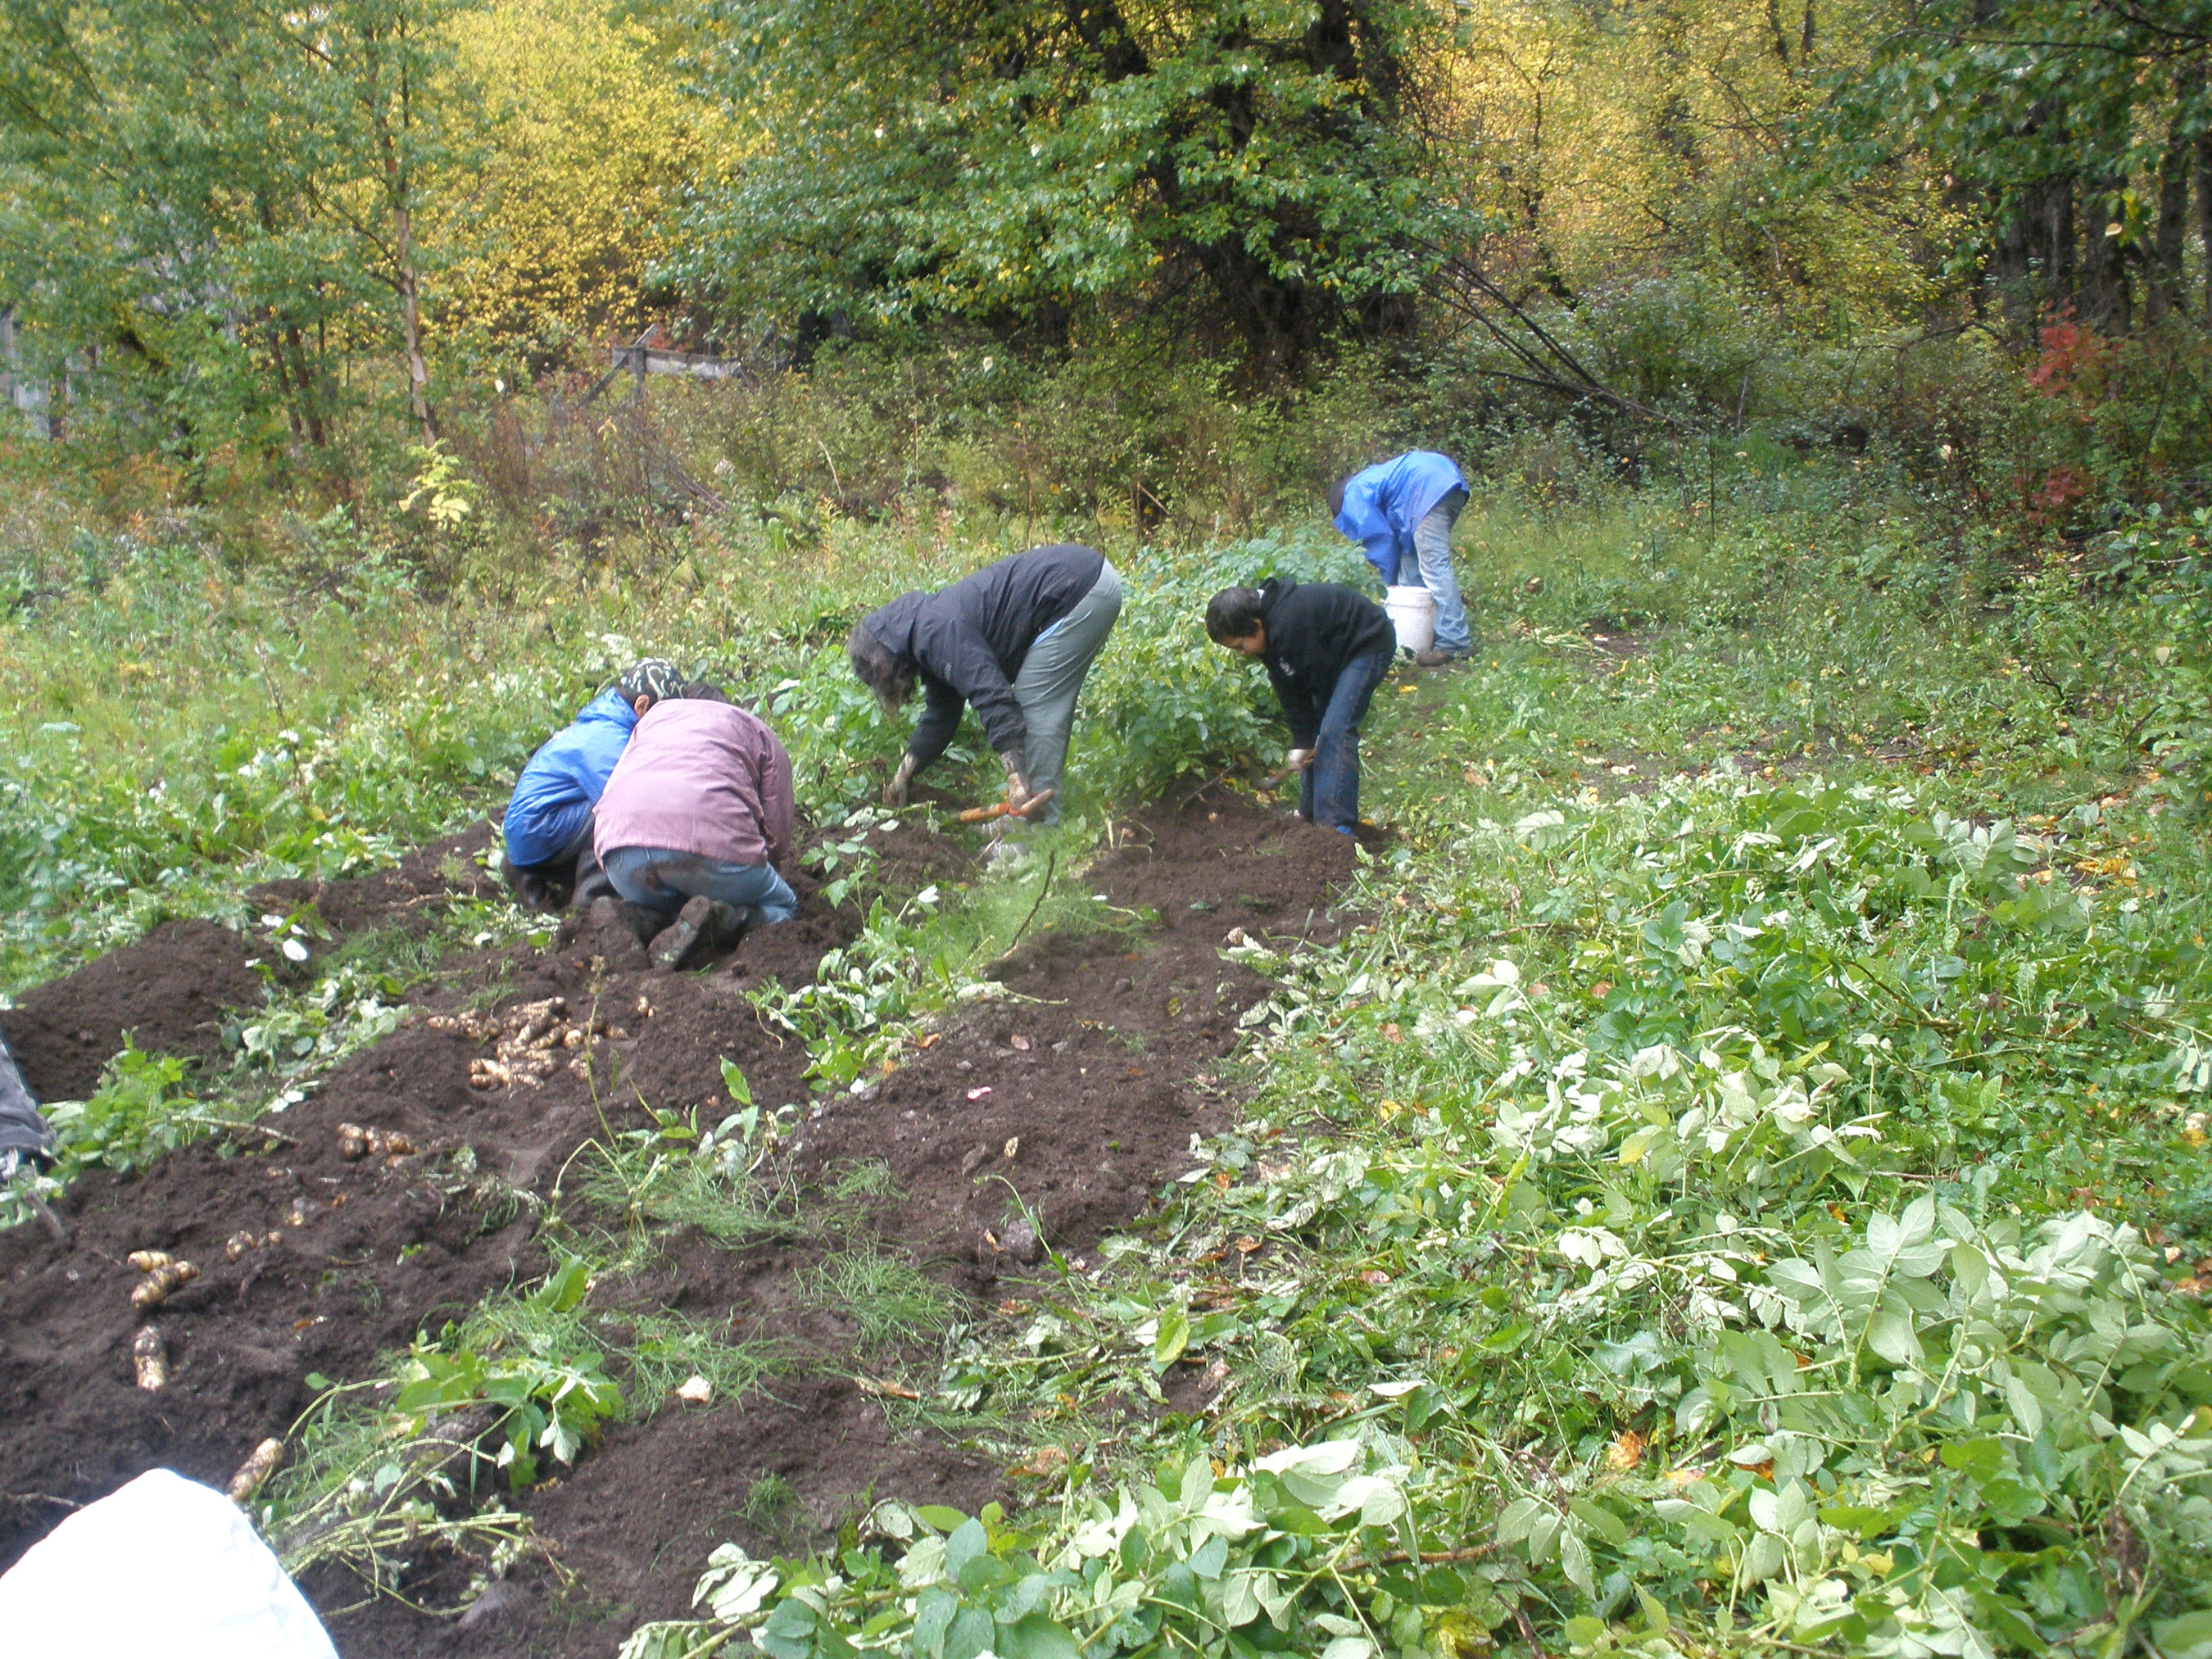 Community members pick potatoes during a potato-picking party Sept. 25 at the WISEGUYS potato patch in Klukwan